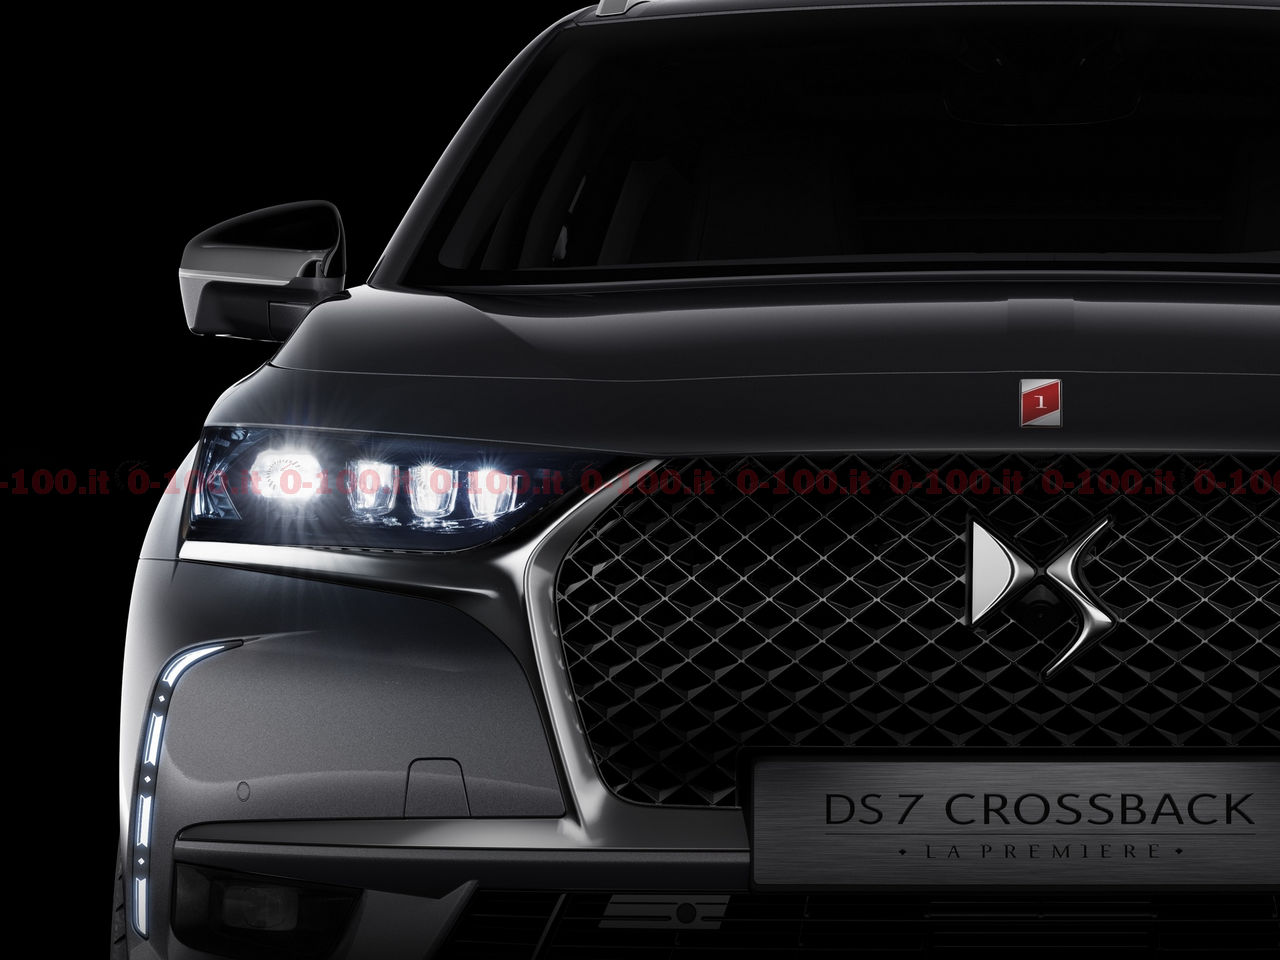 ds7-crossback_lapremiere-2017_0-100_6